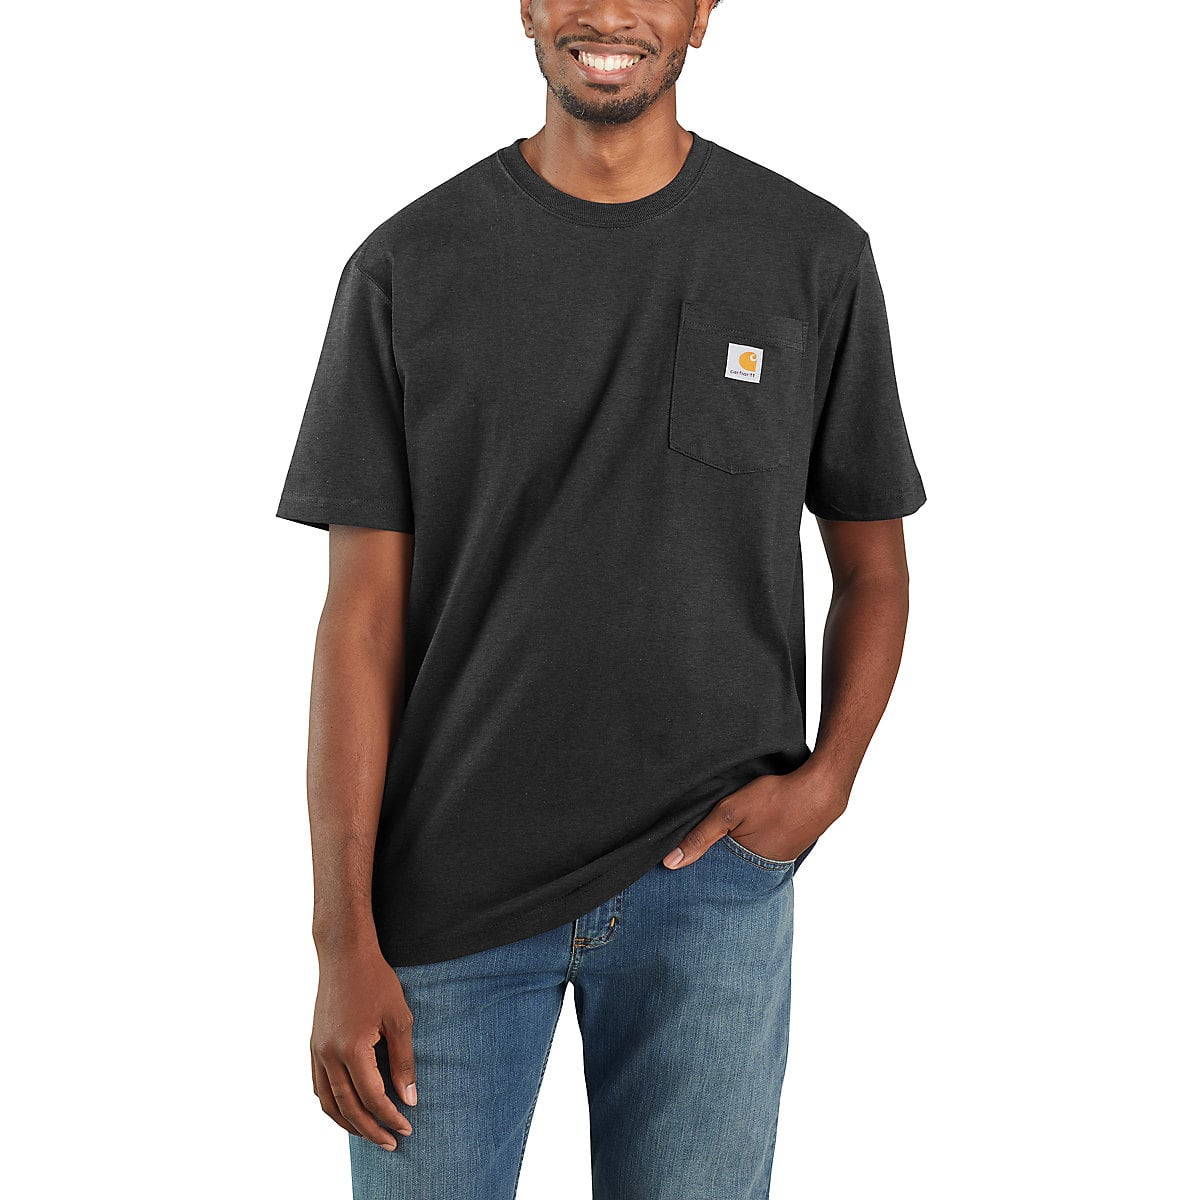 ebfcf164 Men's Workwear Pocket T-Shirt K87 | Carhartt